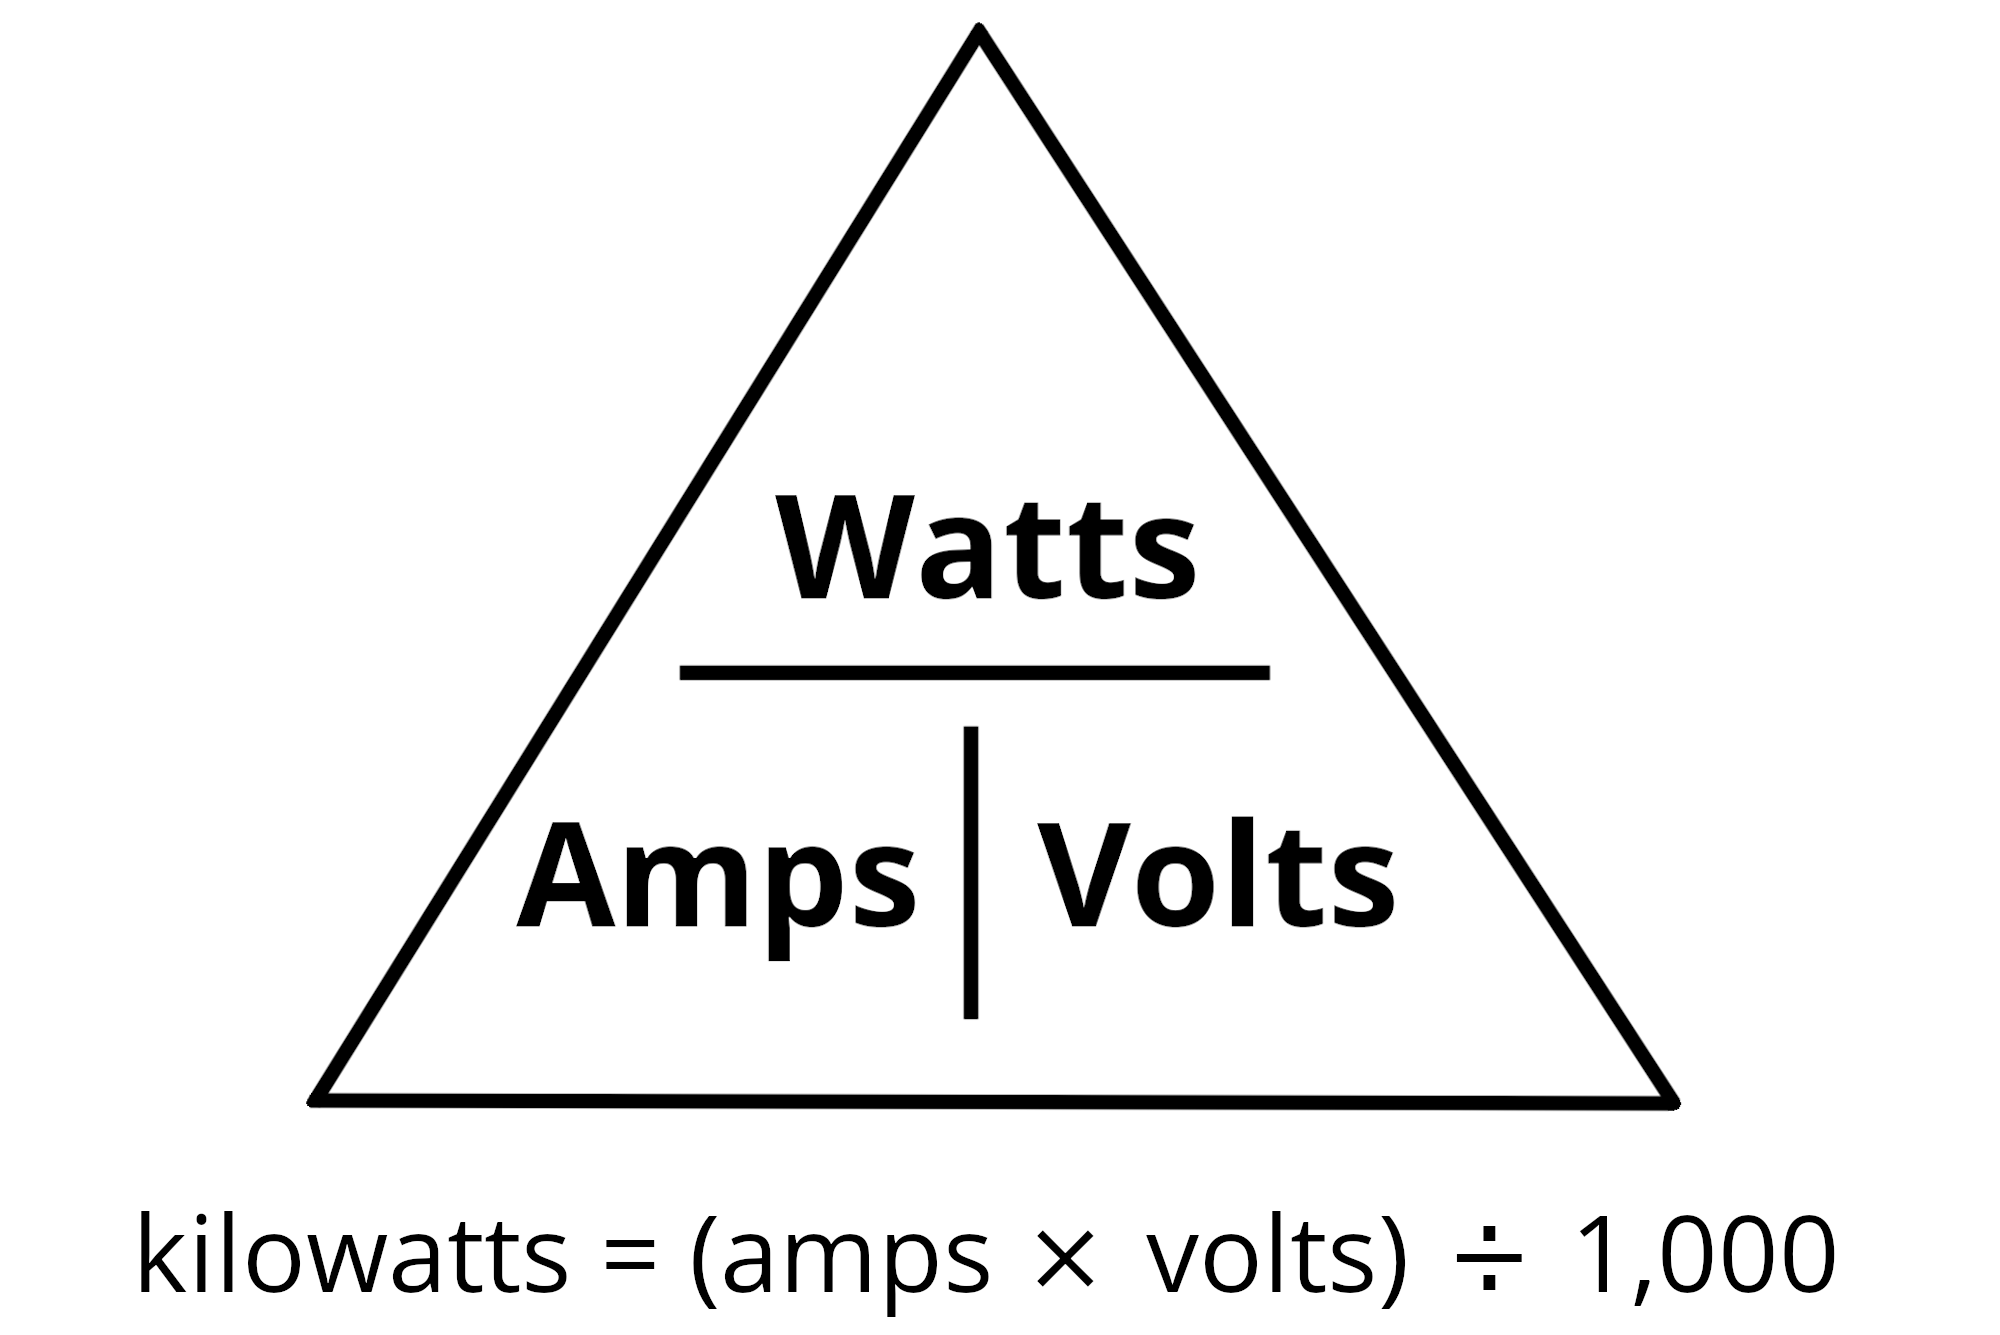 Power triangle illustrating the formula to convert amps to kilowatts with kilowatts being equal to amps times volts divided by 1,000